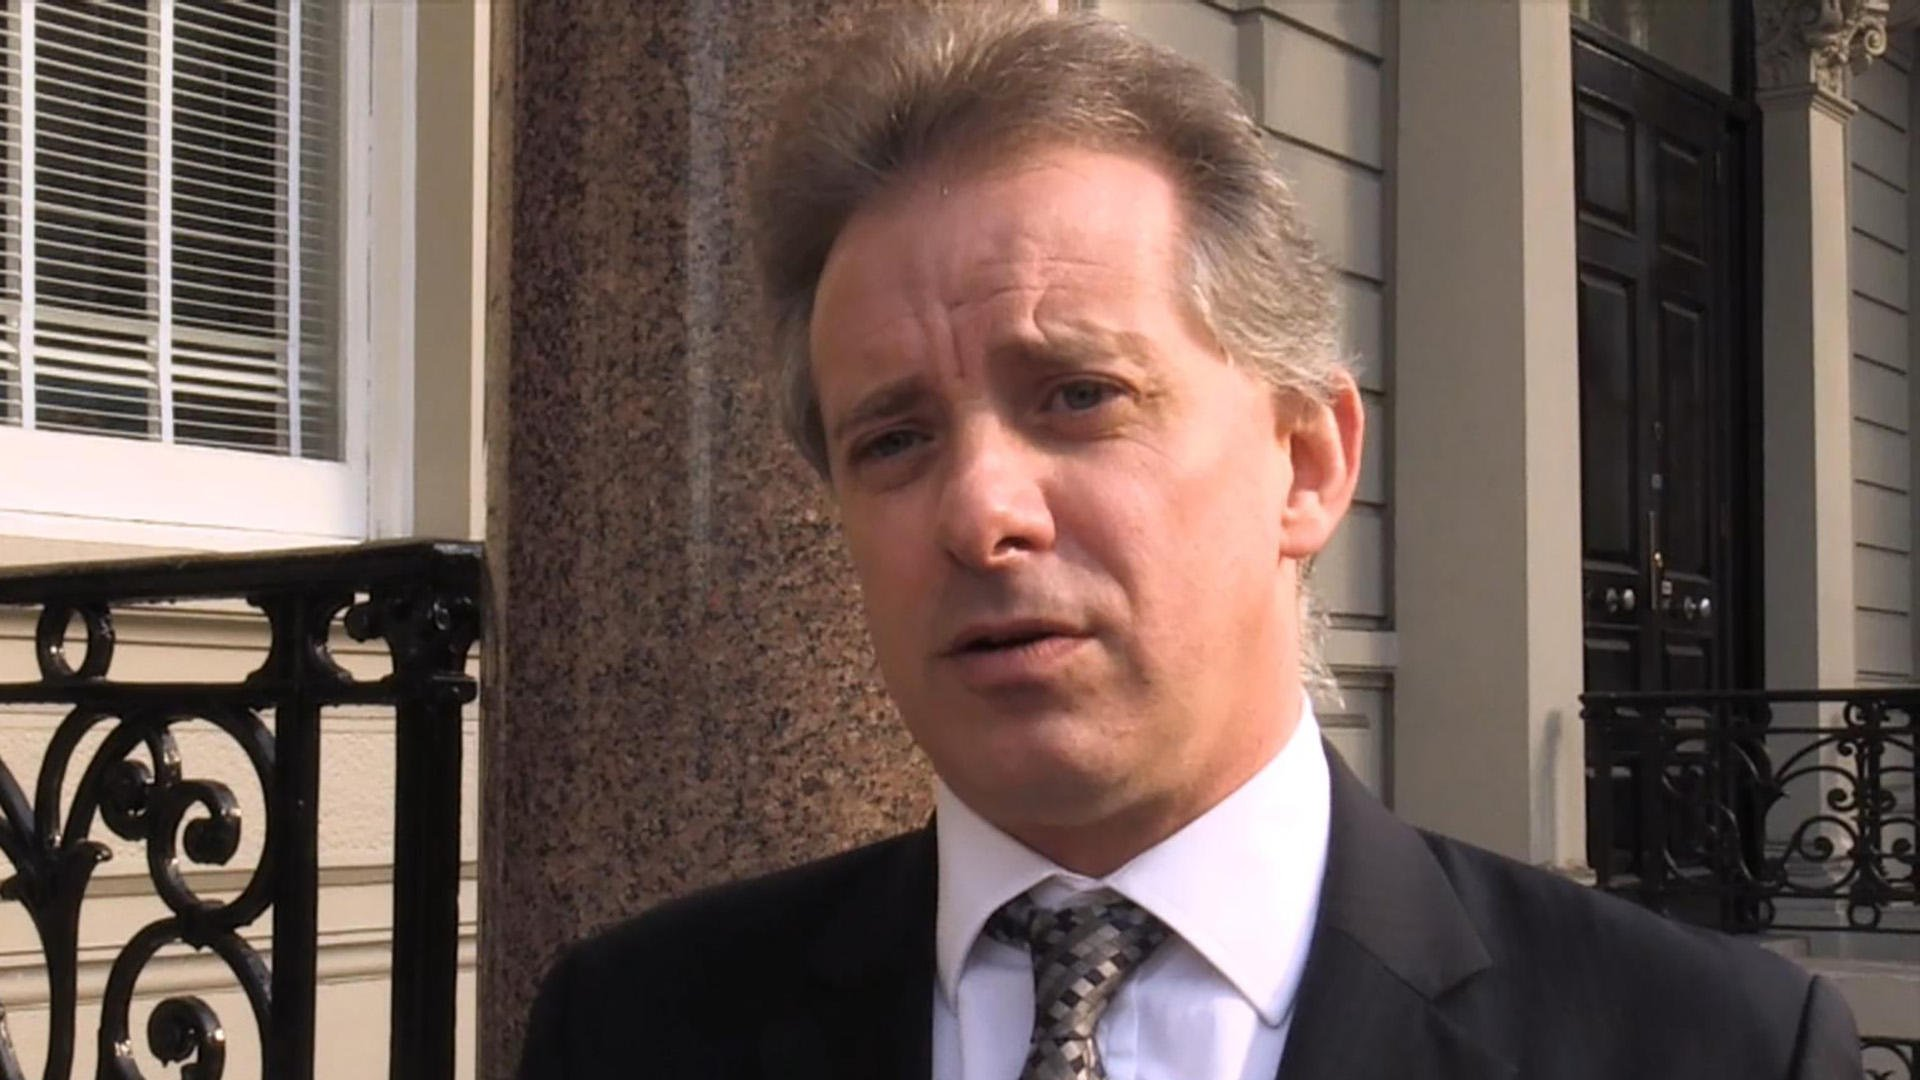 Christopher Steele must appear for dossier deposition in British court